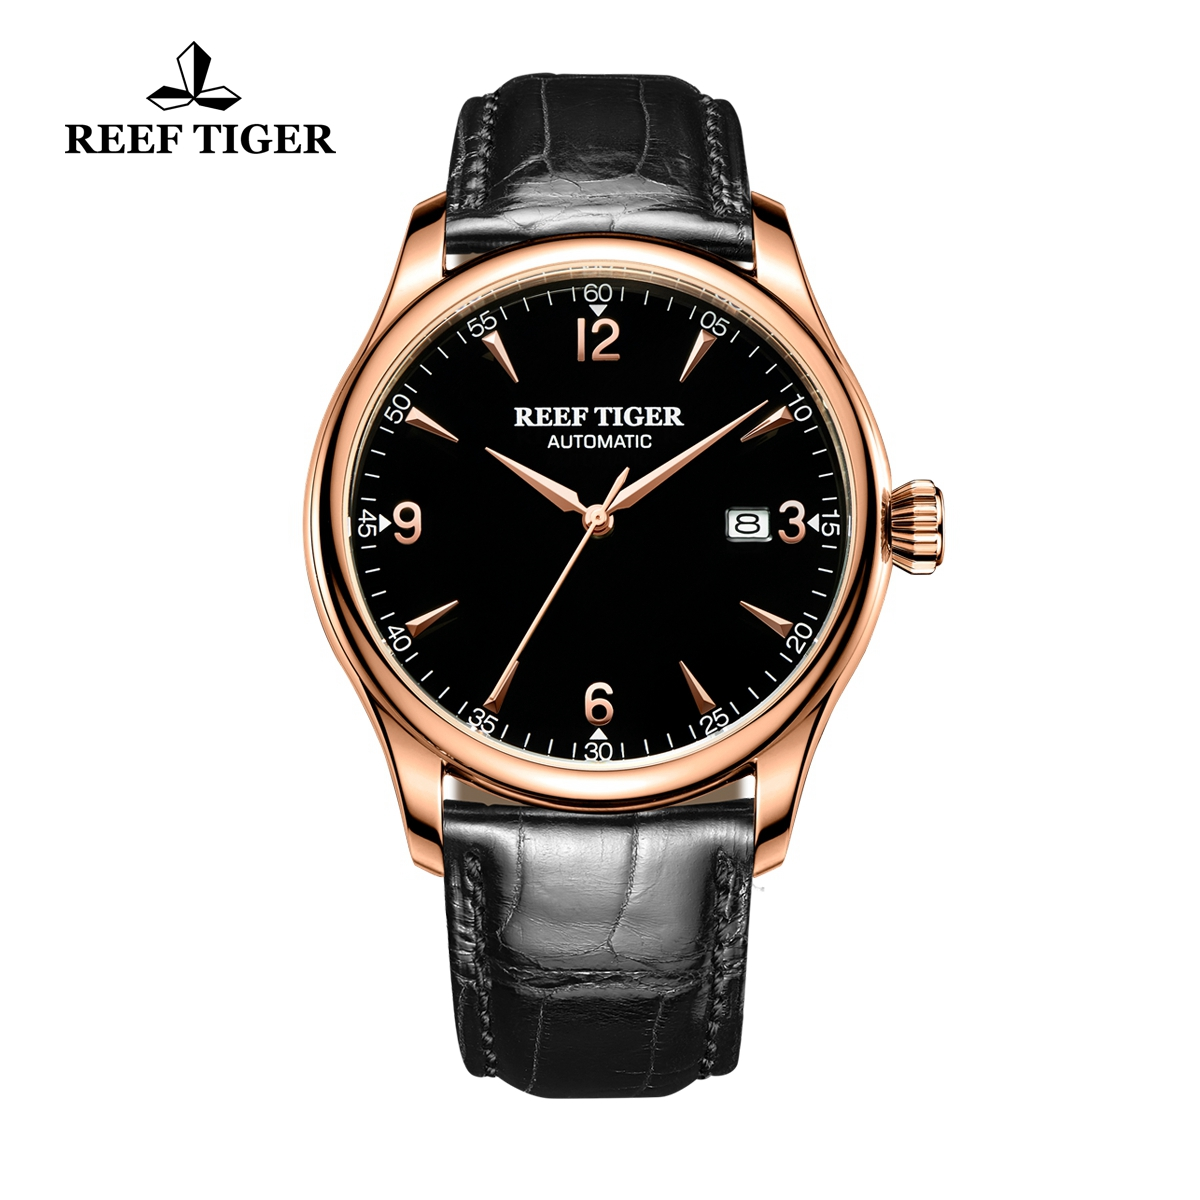 Reef Tiger Heritage Dress Automatic Watch Black Dial Calfskin Leather Strap RGA823G-PBB